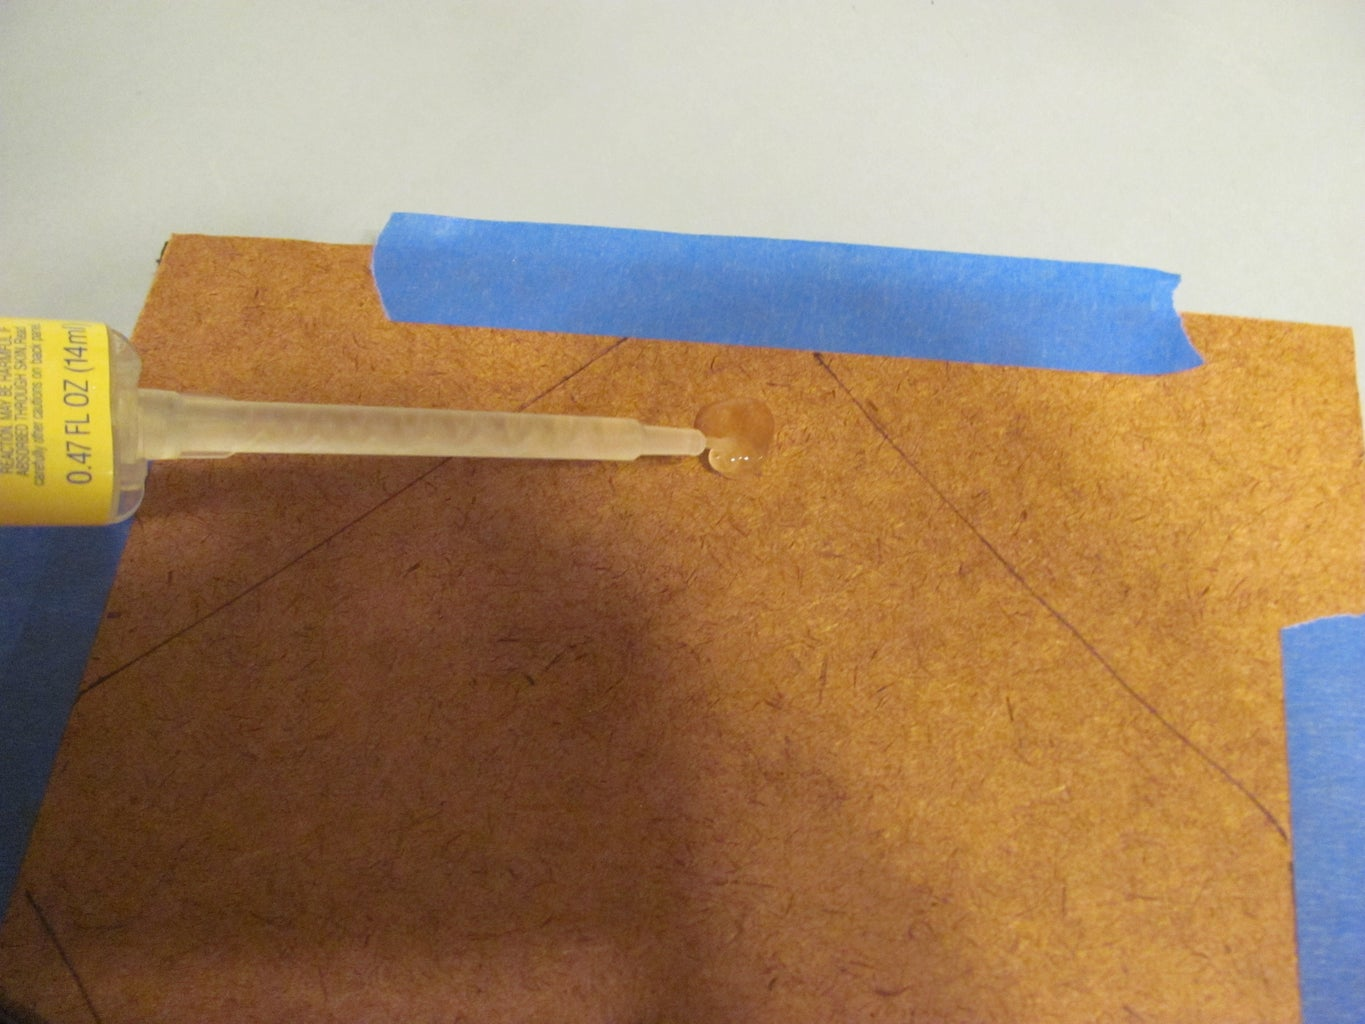 Glue the Spool Assembly to the Hardboard on the Book